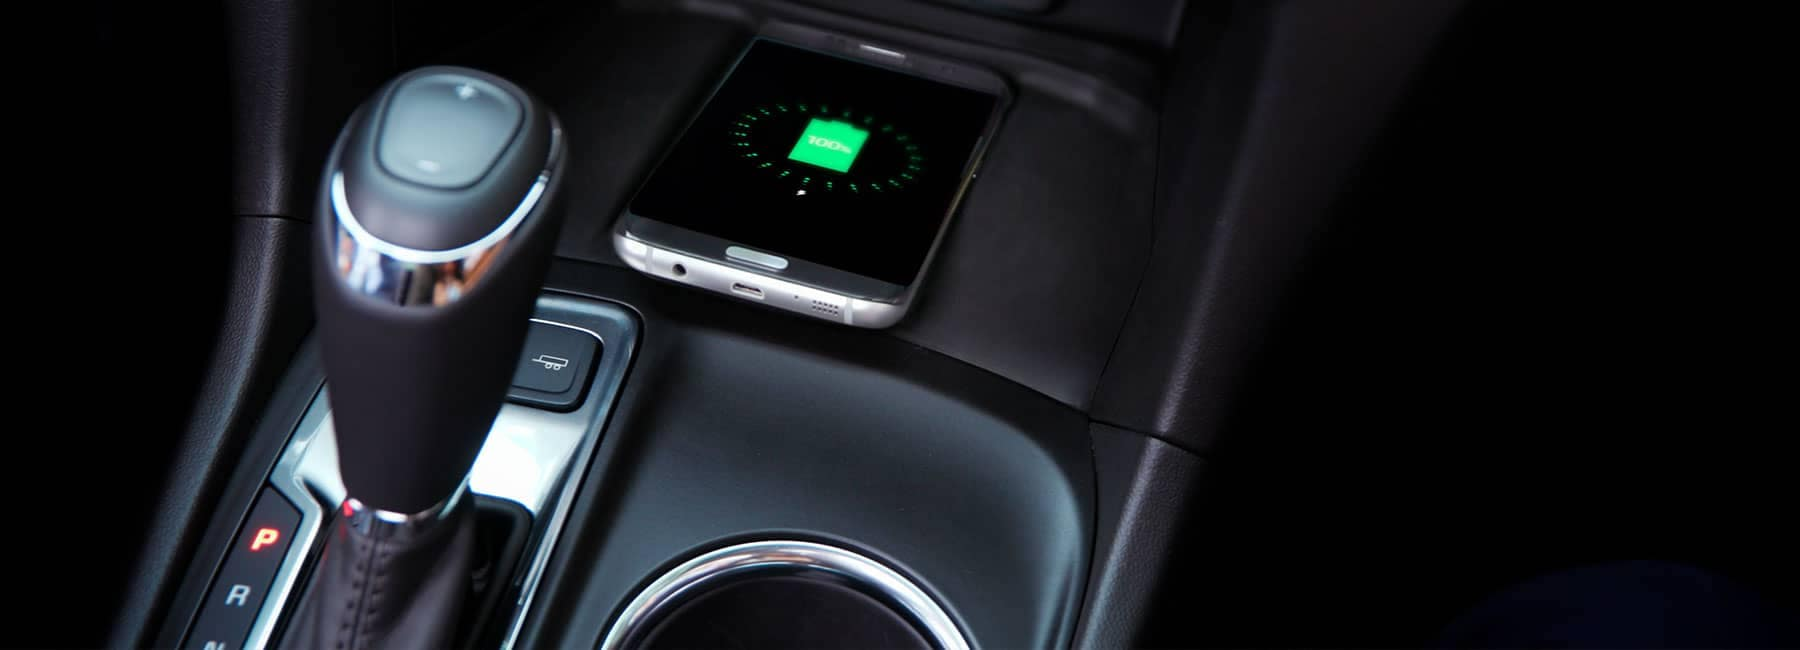 Smart Phone charging within the center console of a Chevrolet Vehicle